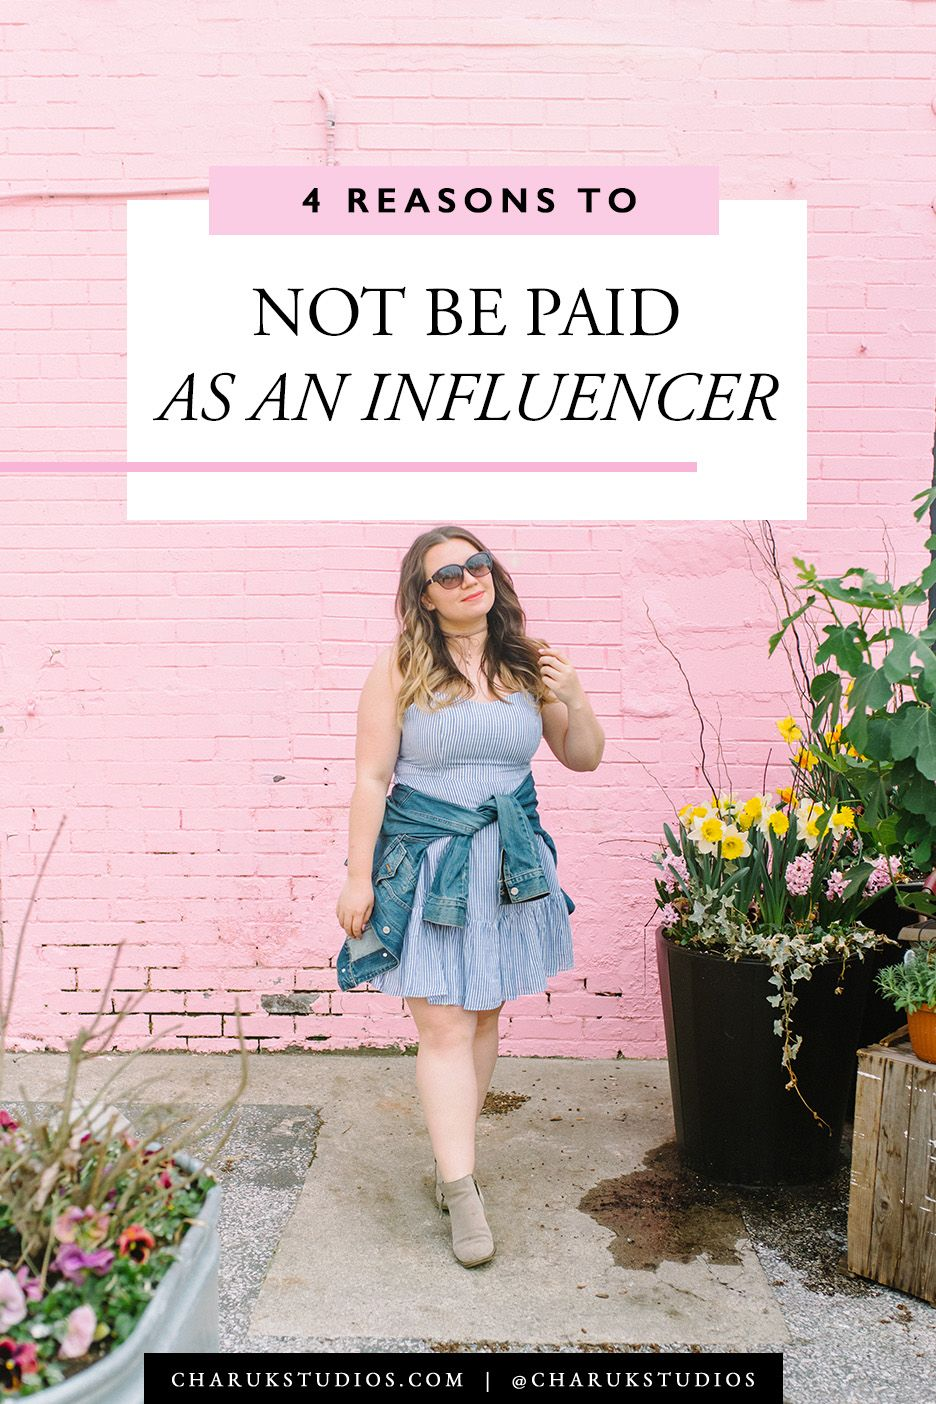 4 Reasons To Not Be Paid As An Influencer (With images